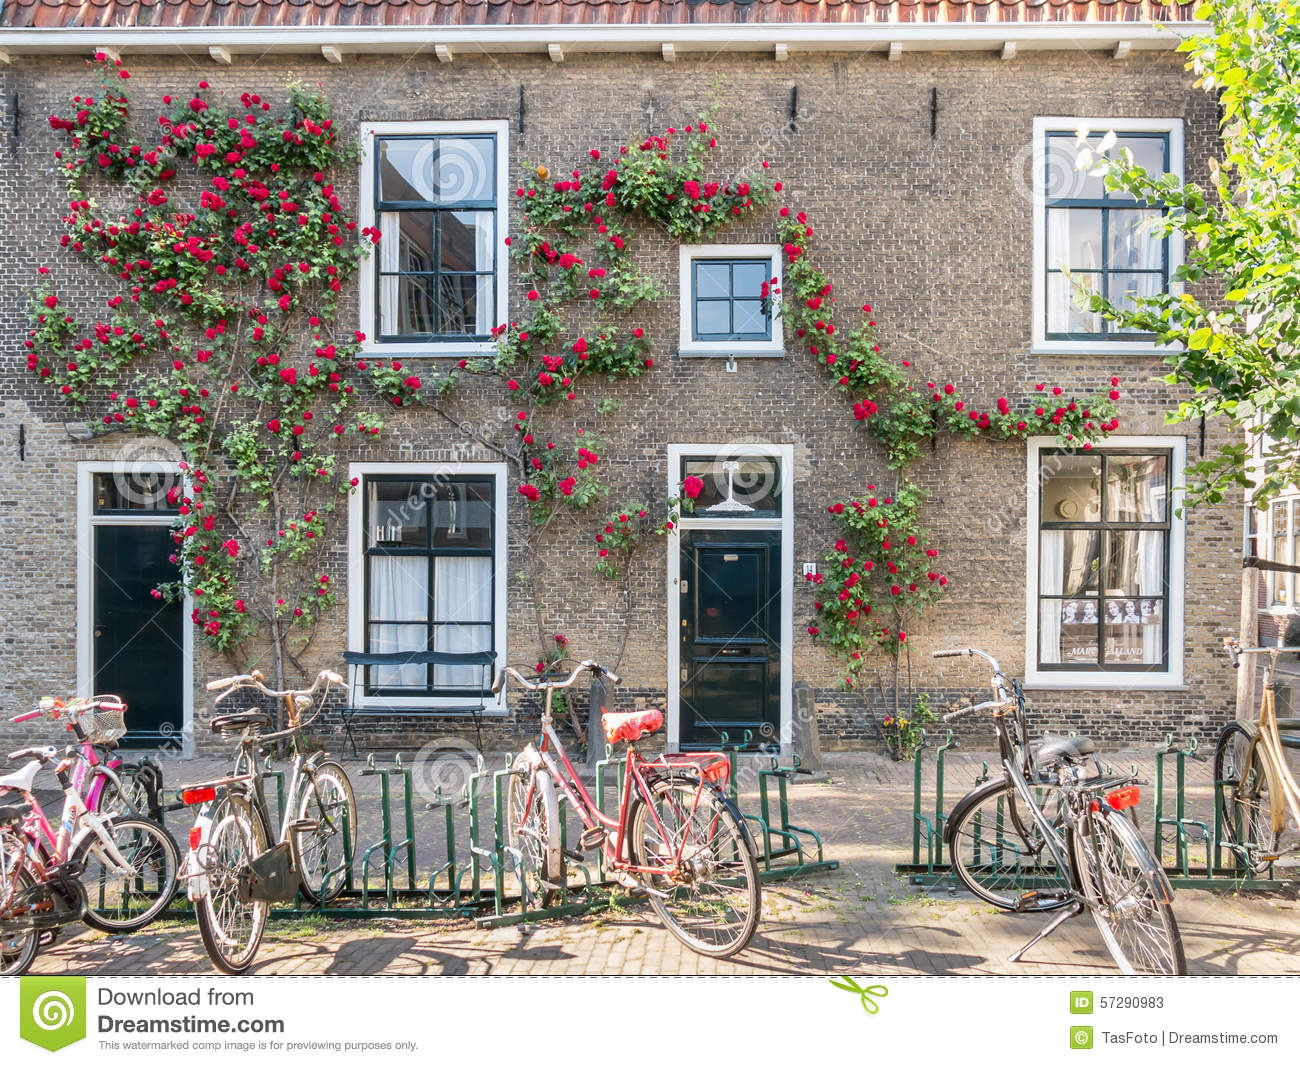 bicycles center climbing doors front gouda holland ... & Bicycles And Old House In Gouda Holland Stock Photo - Image: 57290983 Pezcame.Com